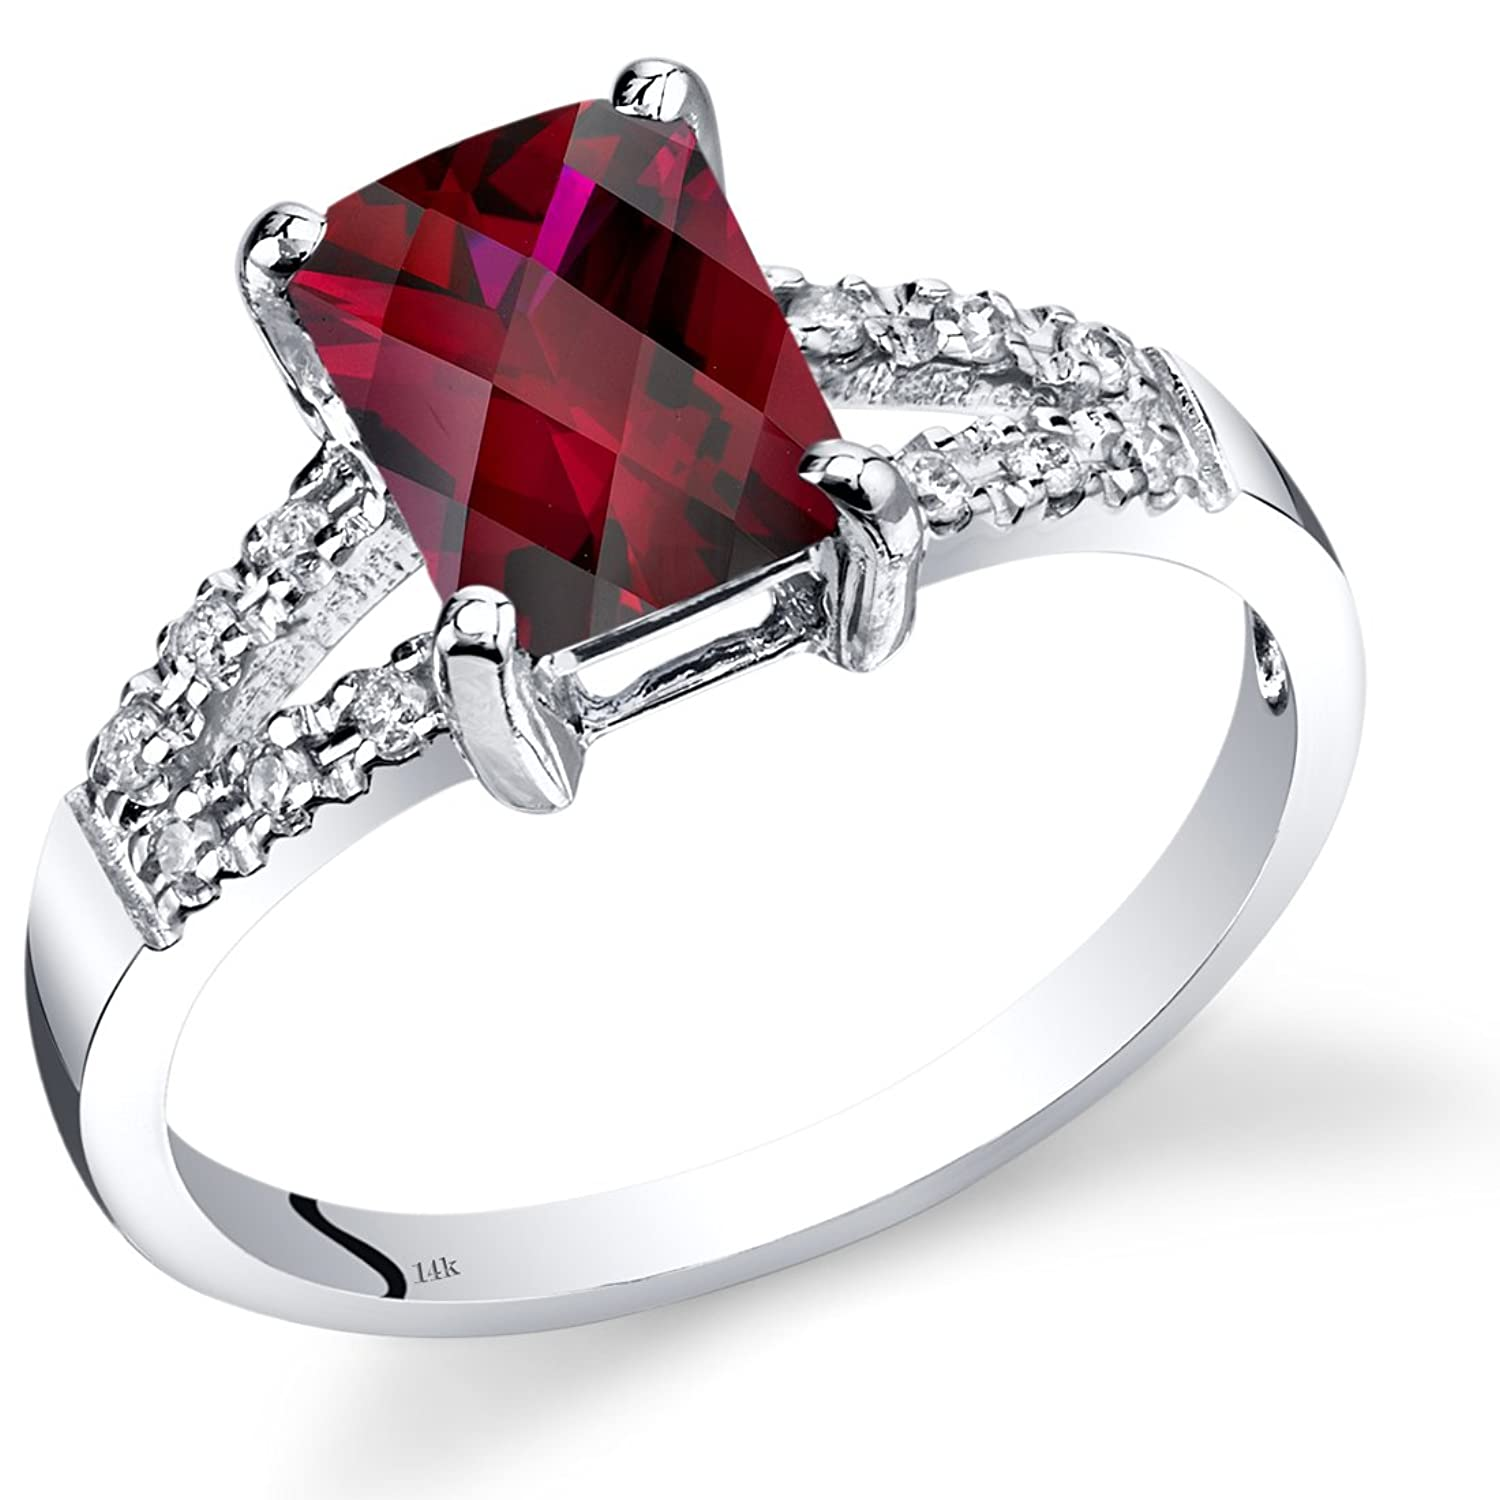 14K White Gold Created Ruby Diamond Venetian Ring 2 Carats Total